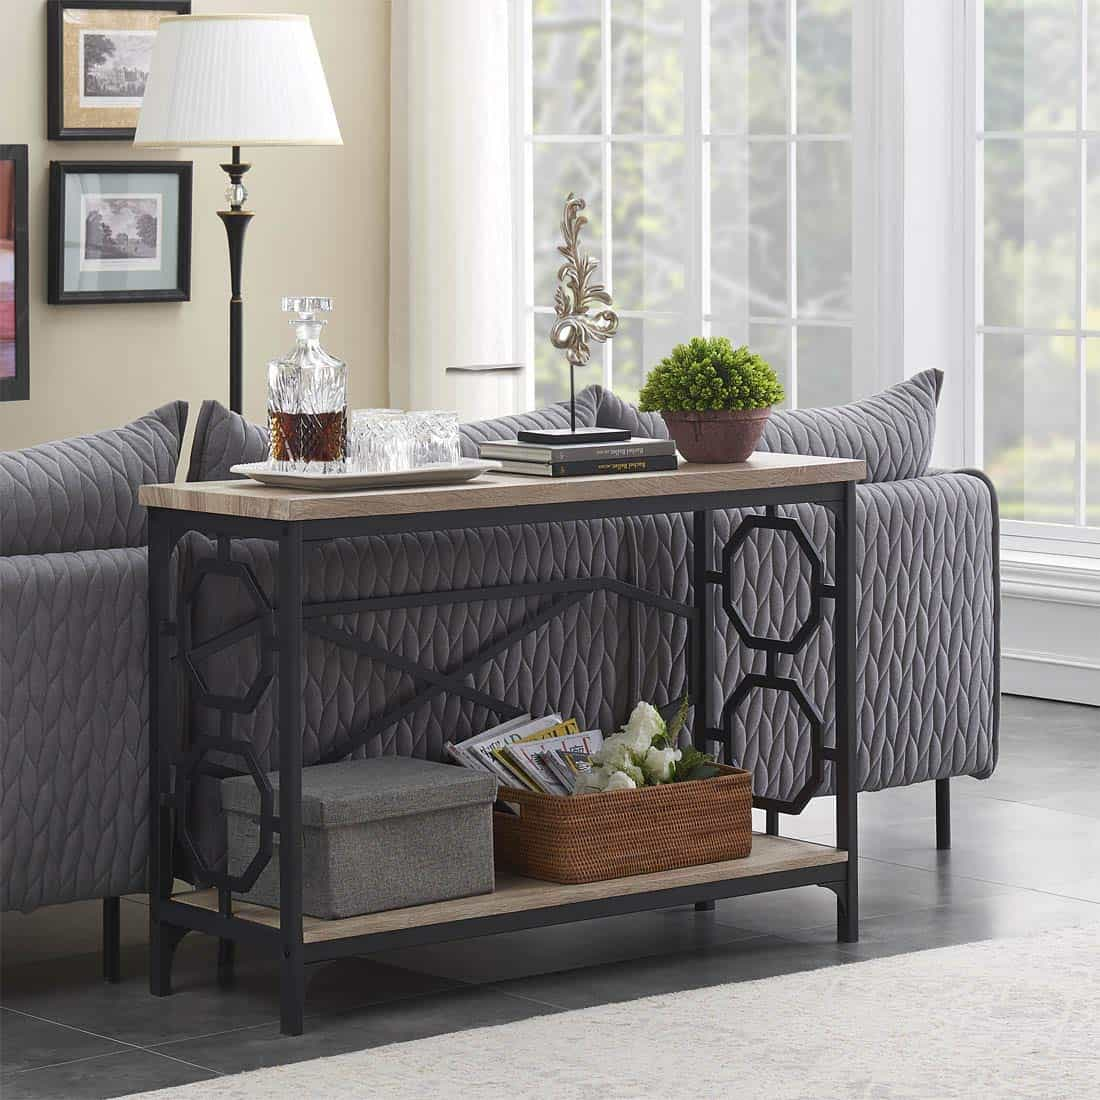 top 35 best sofa table ideas for 2021